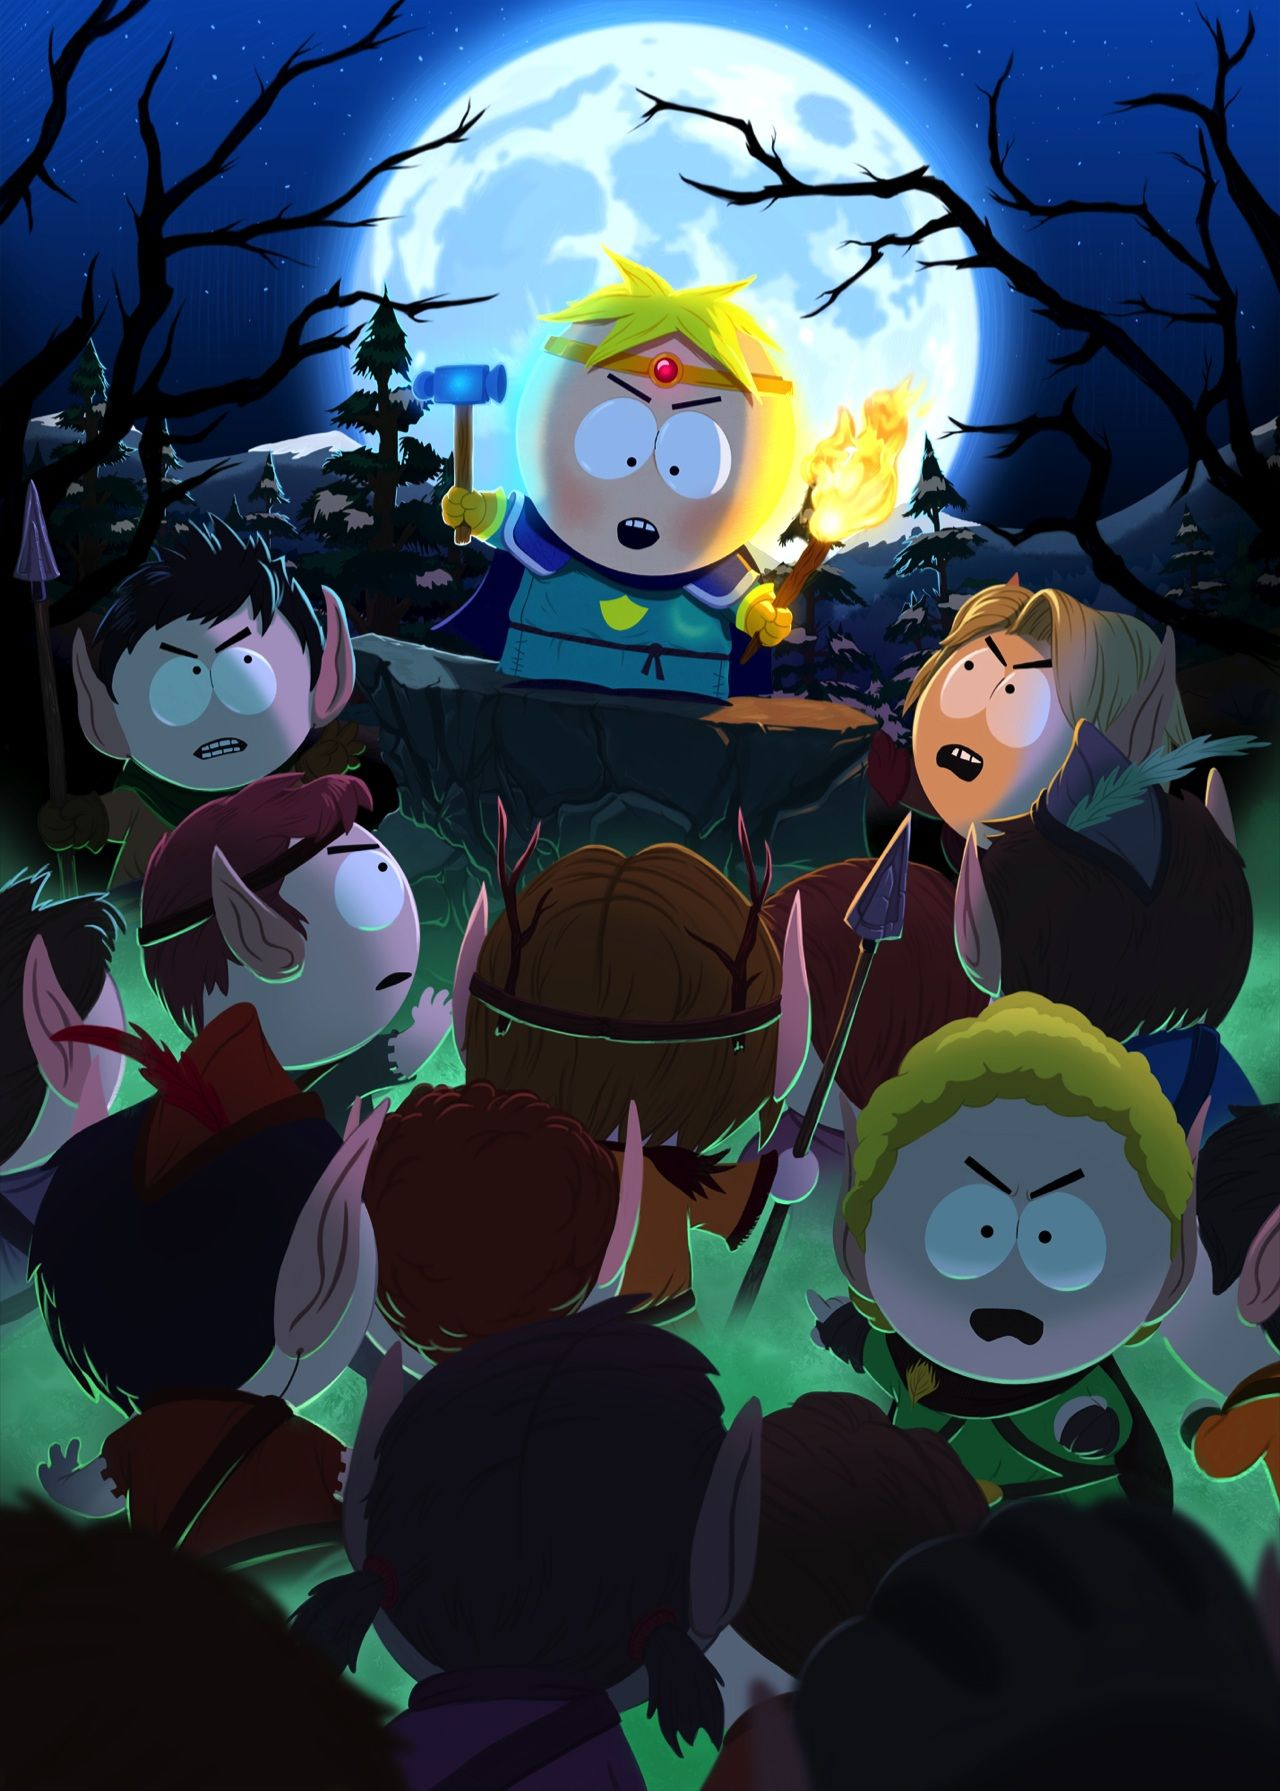 New Batch of Screenshots for South Park The Stick of